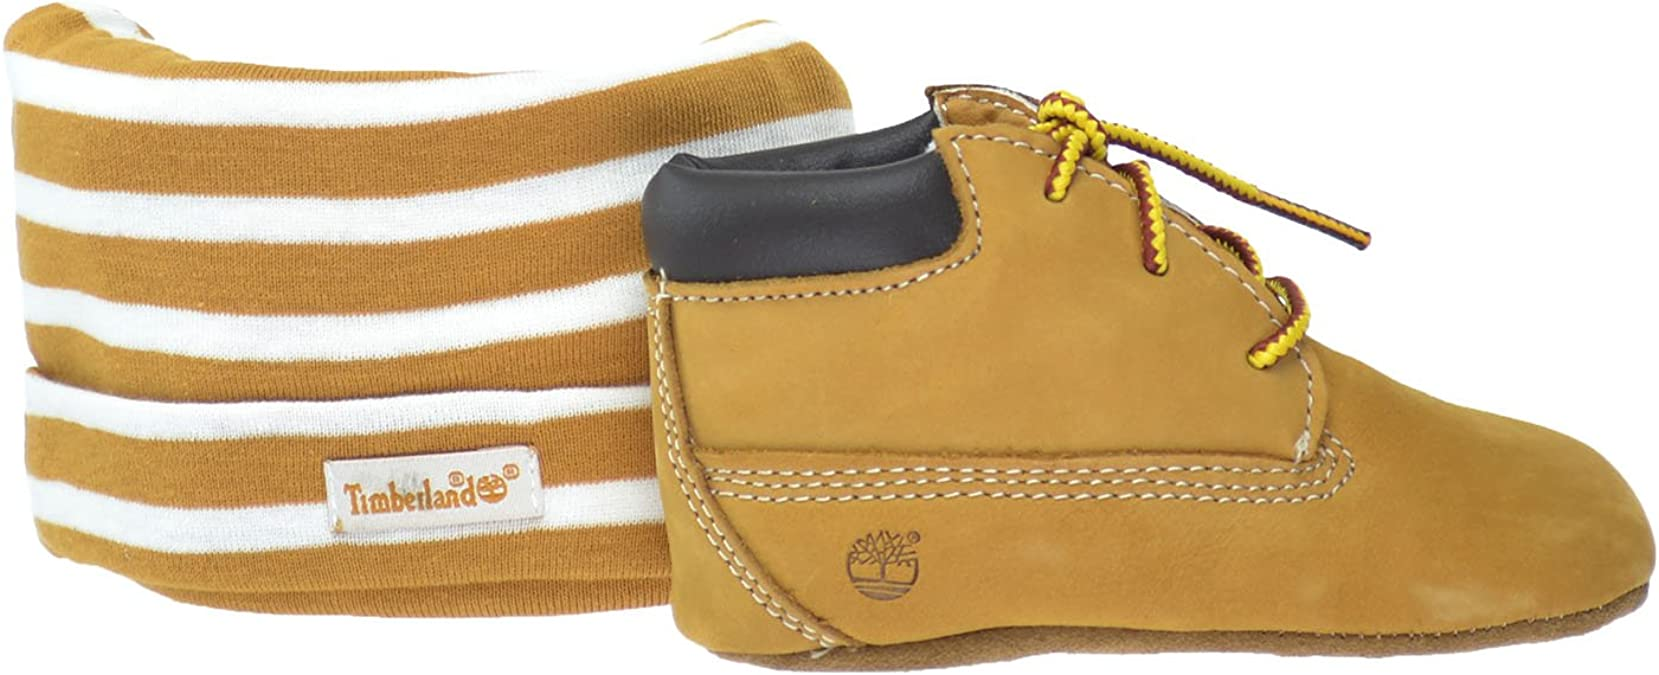 Timberland Baby Boy/'s Crib Shoes Bootie Wheat Soft Bottom 9589R Gift Set